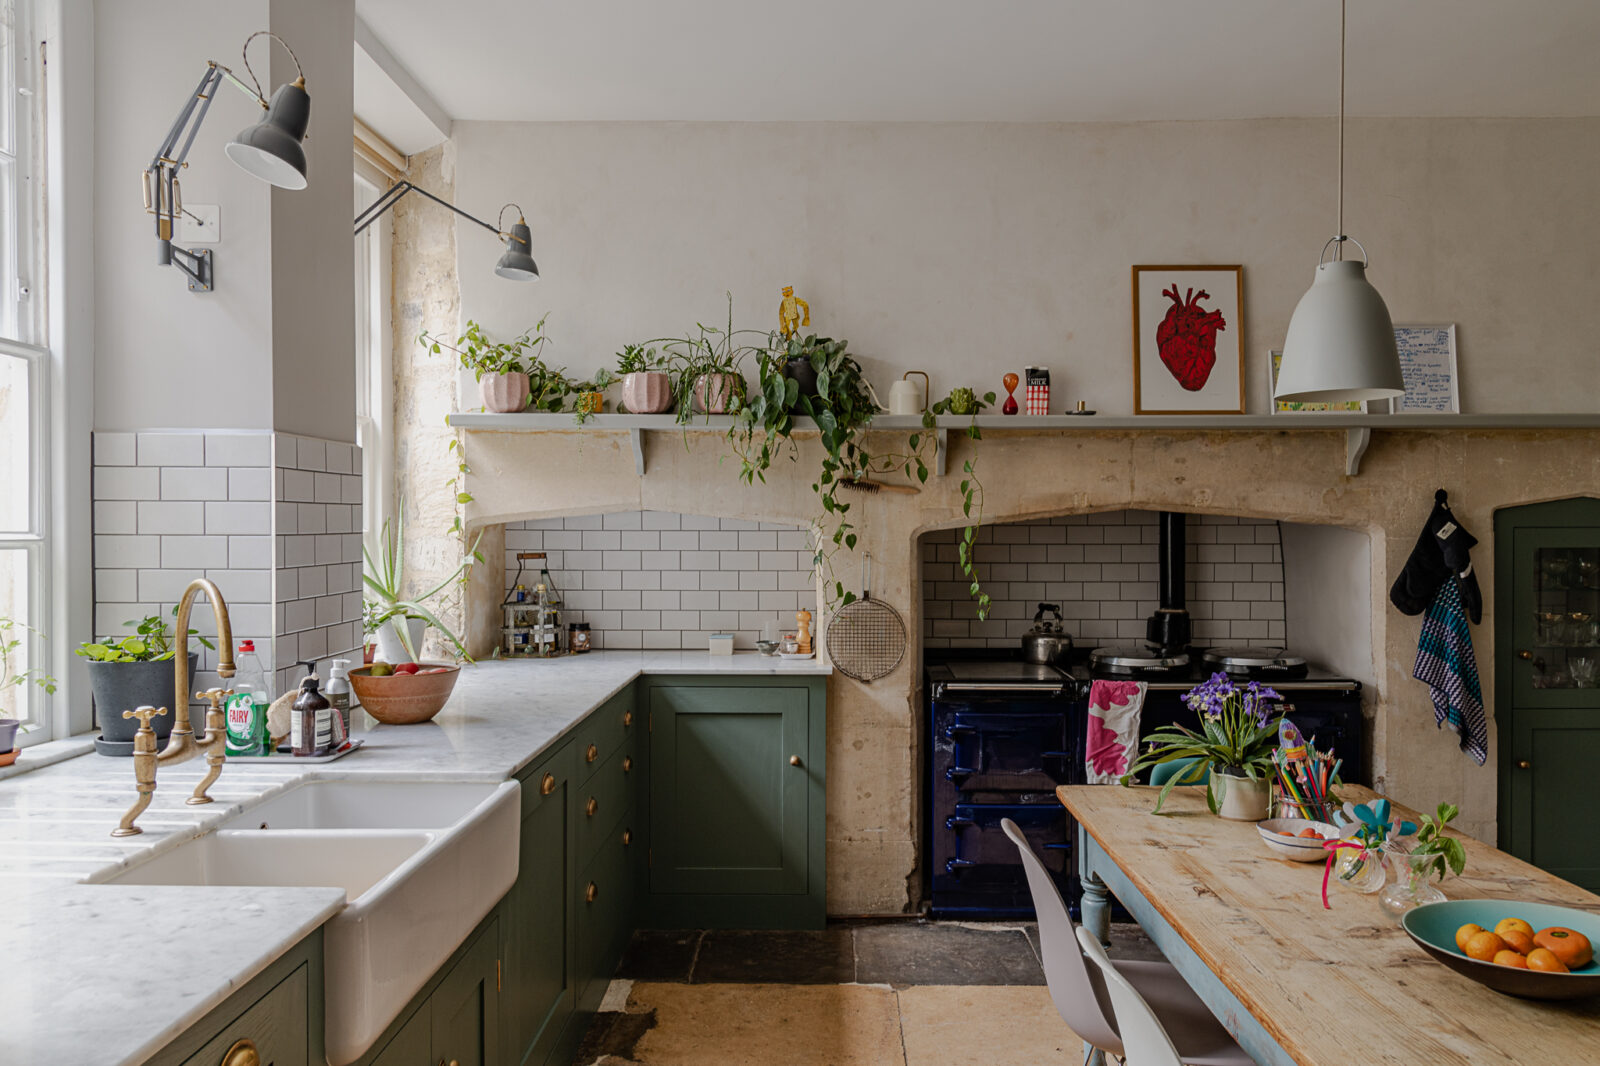 The kitchen has been sensitively updated in keeping with the style of the home: updated cabinets, a double sink and blue aga work effortlessly with stone bath fireplaces